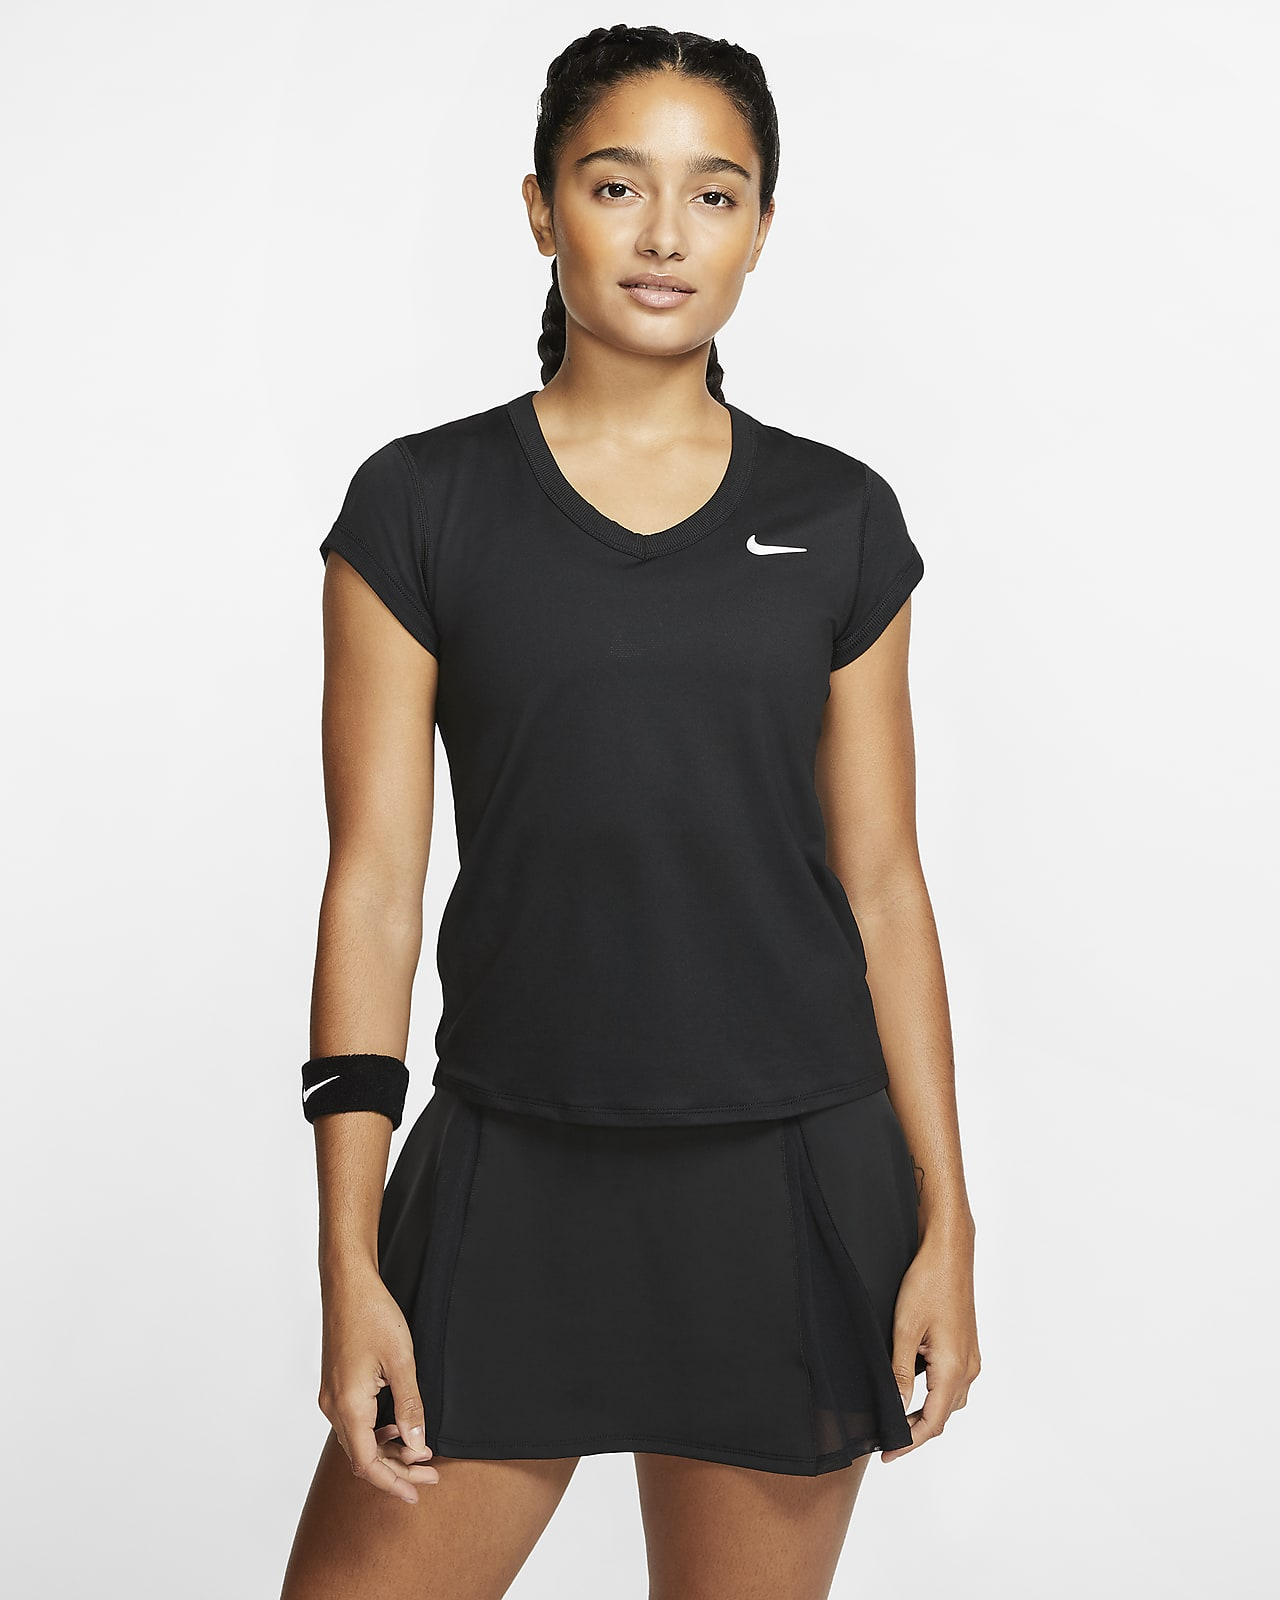 NikeCourt Dri-FIT Women's Short-Sleeve Tennis Top